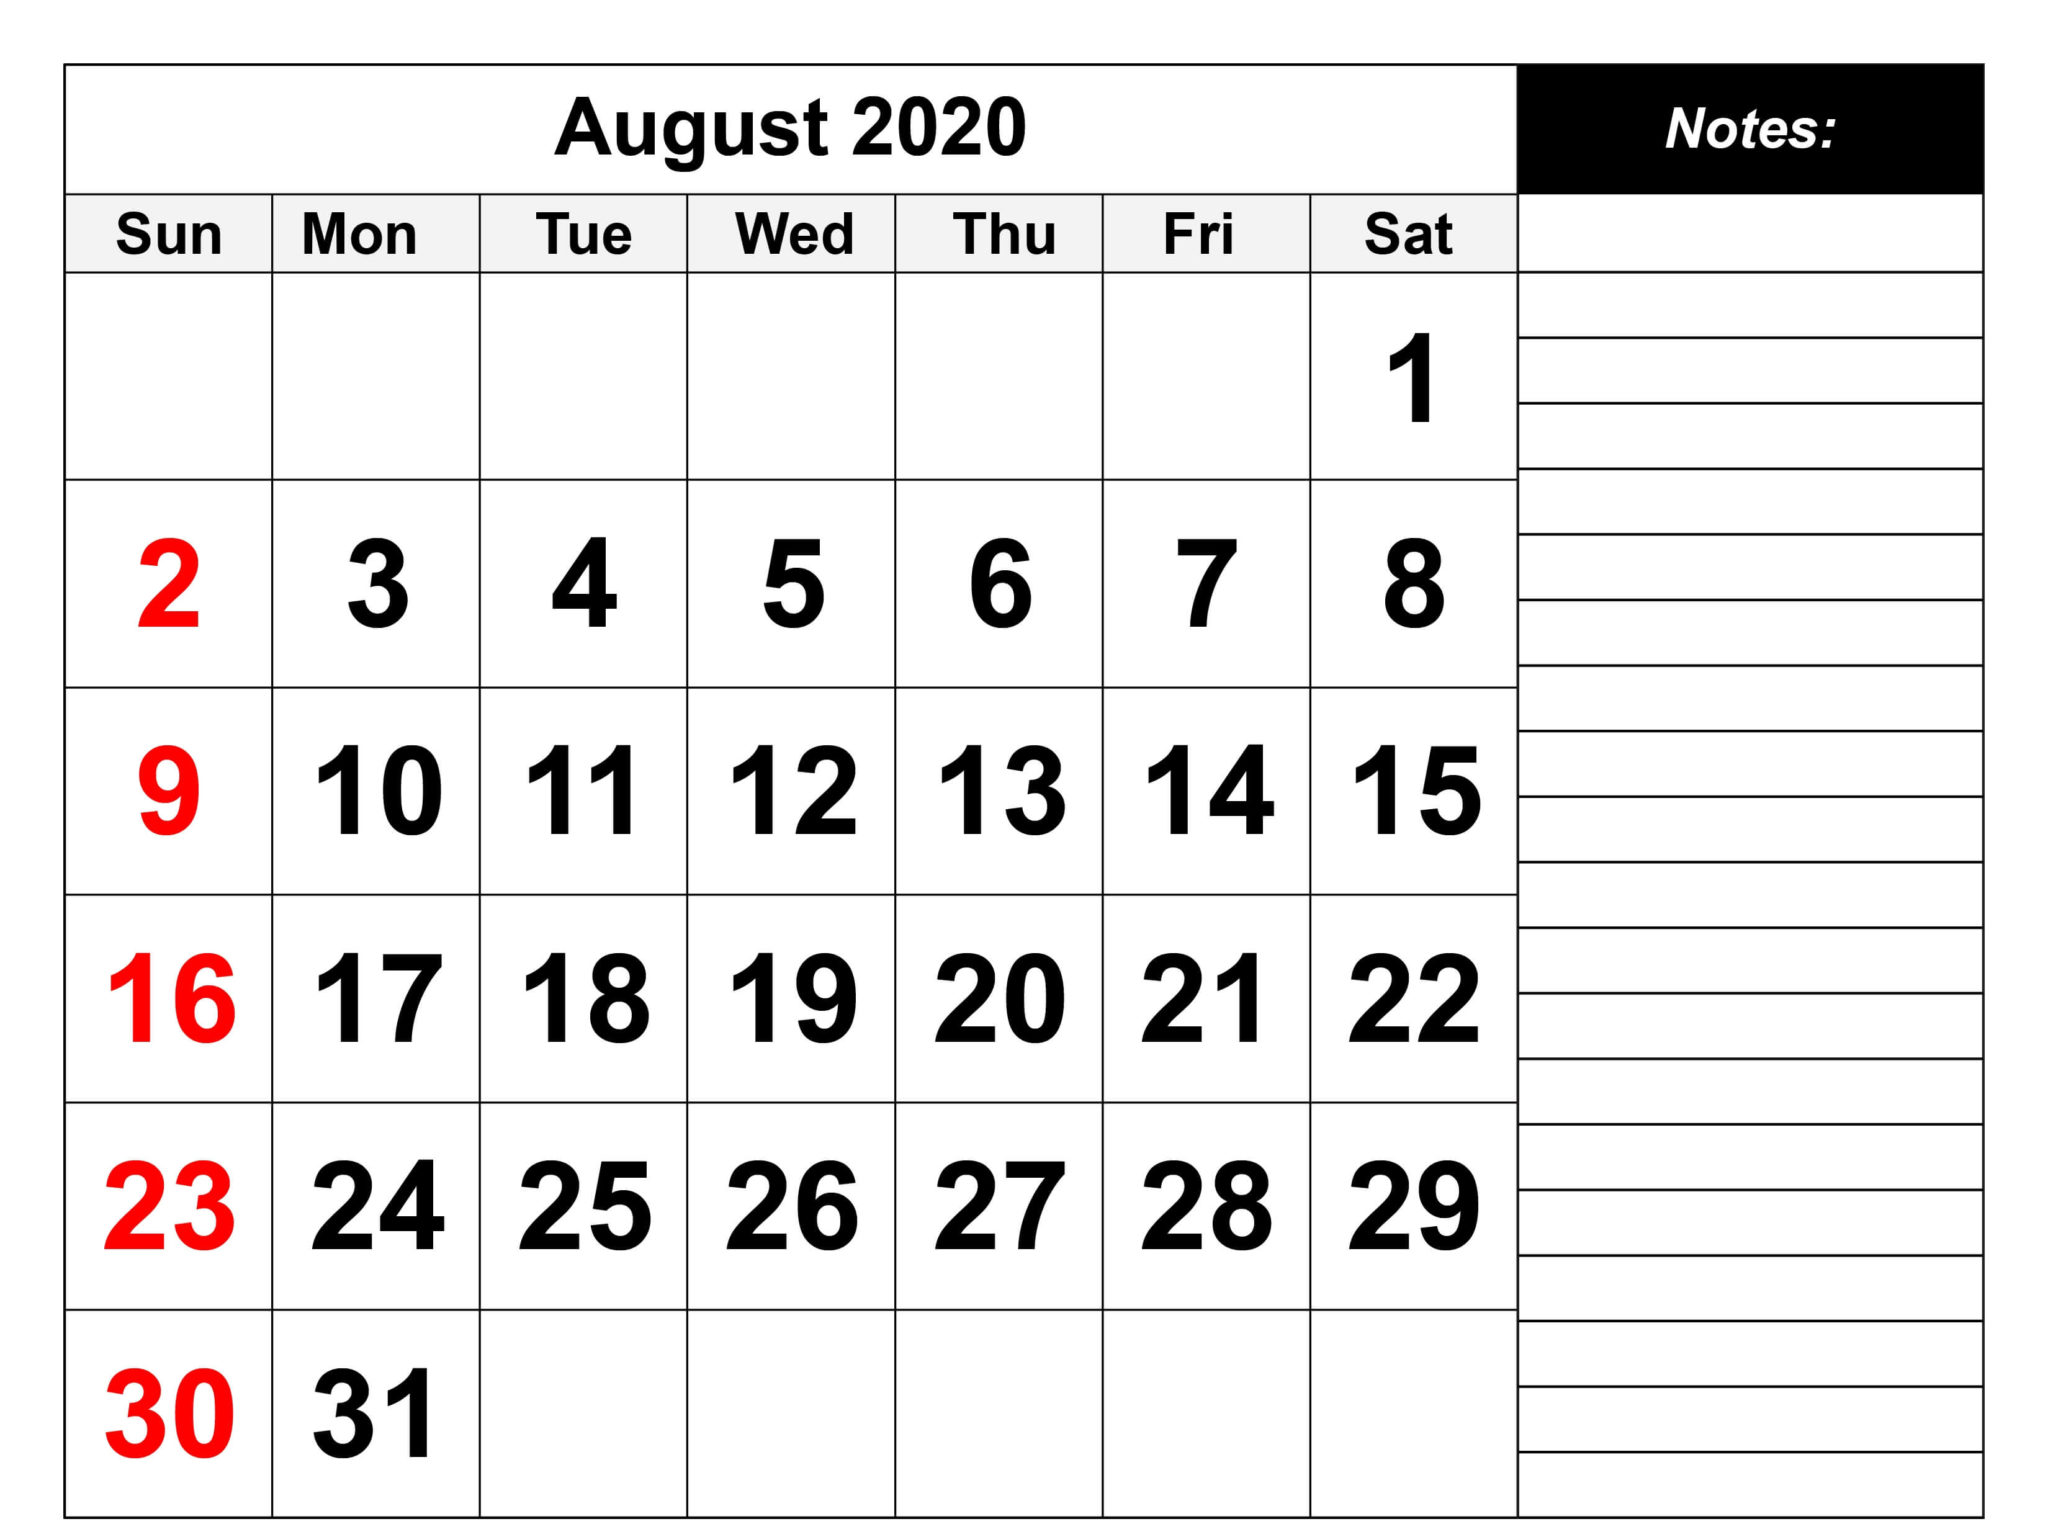 Free August 2020 Calendar With Notes